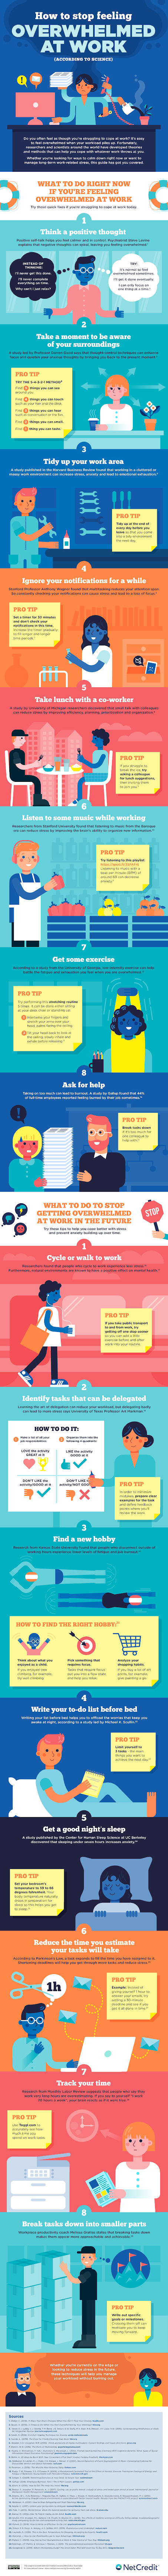 Ways to overcome the work-stress